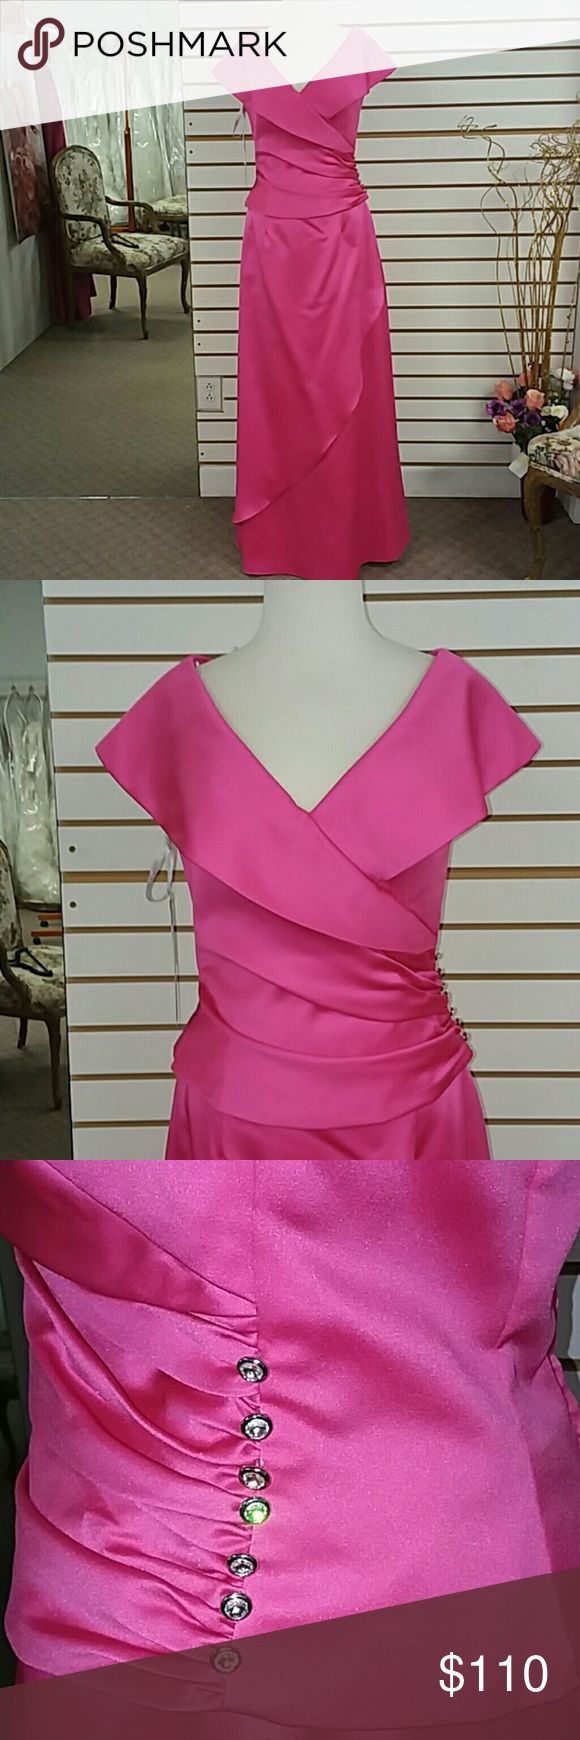 """FUCHSIA color Alfred Angelo 2pc MOB NWT Alfred Angelo 2 pc dress top 6572, skirt MSKTGZ Retail $241 Color: Fuchsia Fabric: Satin with rhinestone button embellishment at fitted waist - does have elastic in back of skirt waistband Size 10 both pieces  Bust 37"""", Waist 30"""", Hip 40.5"""" Condition: Sample dress from bridal shop. May have been tried on but not worn. Alfred Angelo Dresses Maxi"""